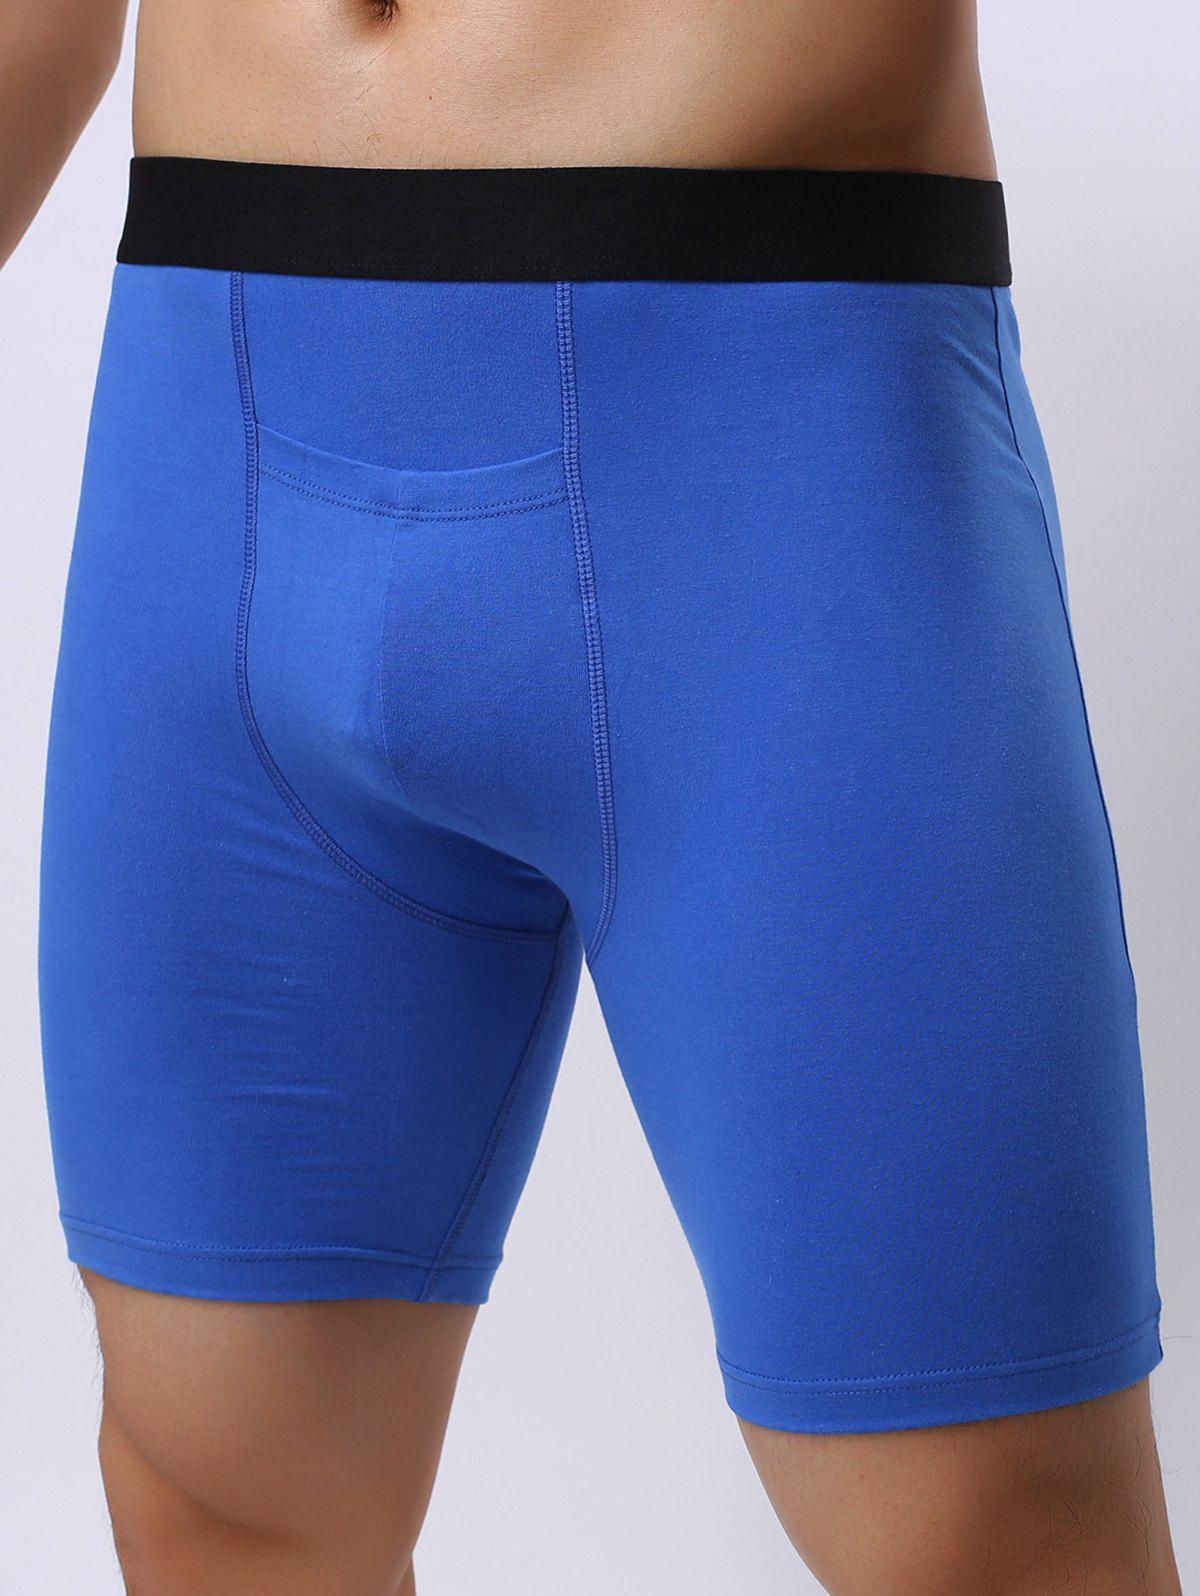 Color Block Stretch Front Pocket Design Shorts - BLUE XL